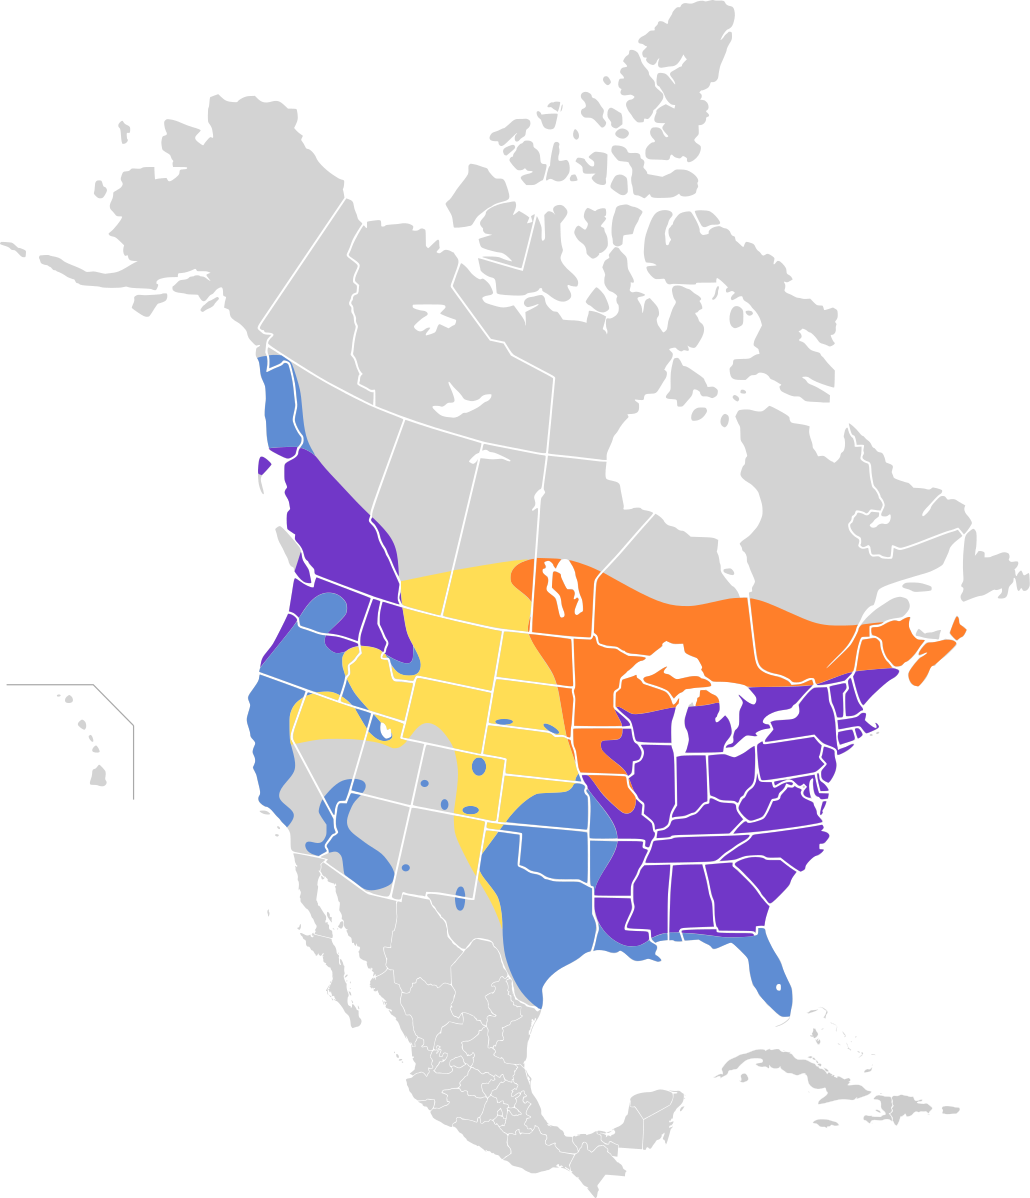 A map of North America with most of America and some parts of Southern Canada swathed in large patches of yellow, orange, purple, and blue.